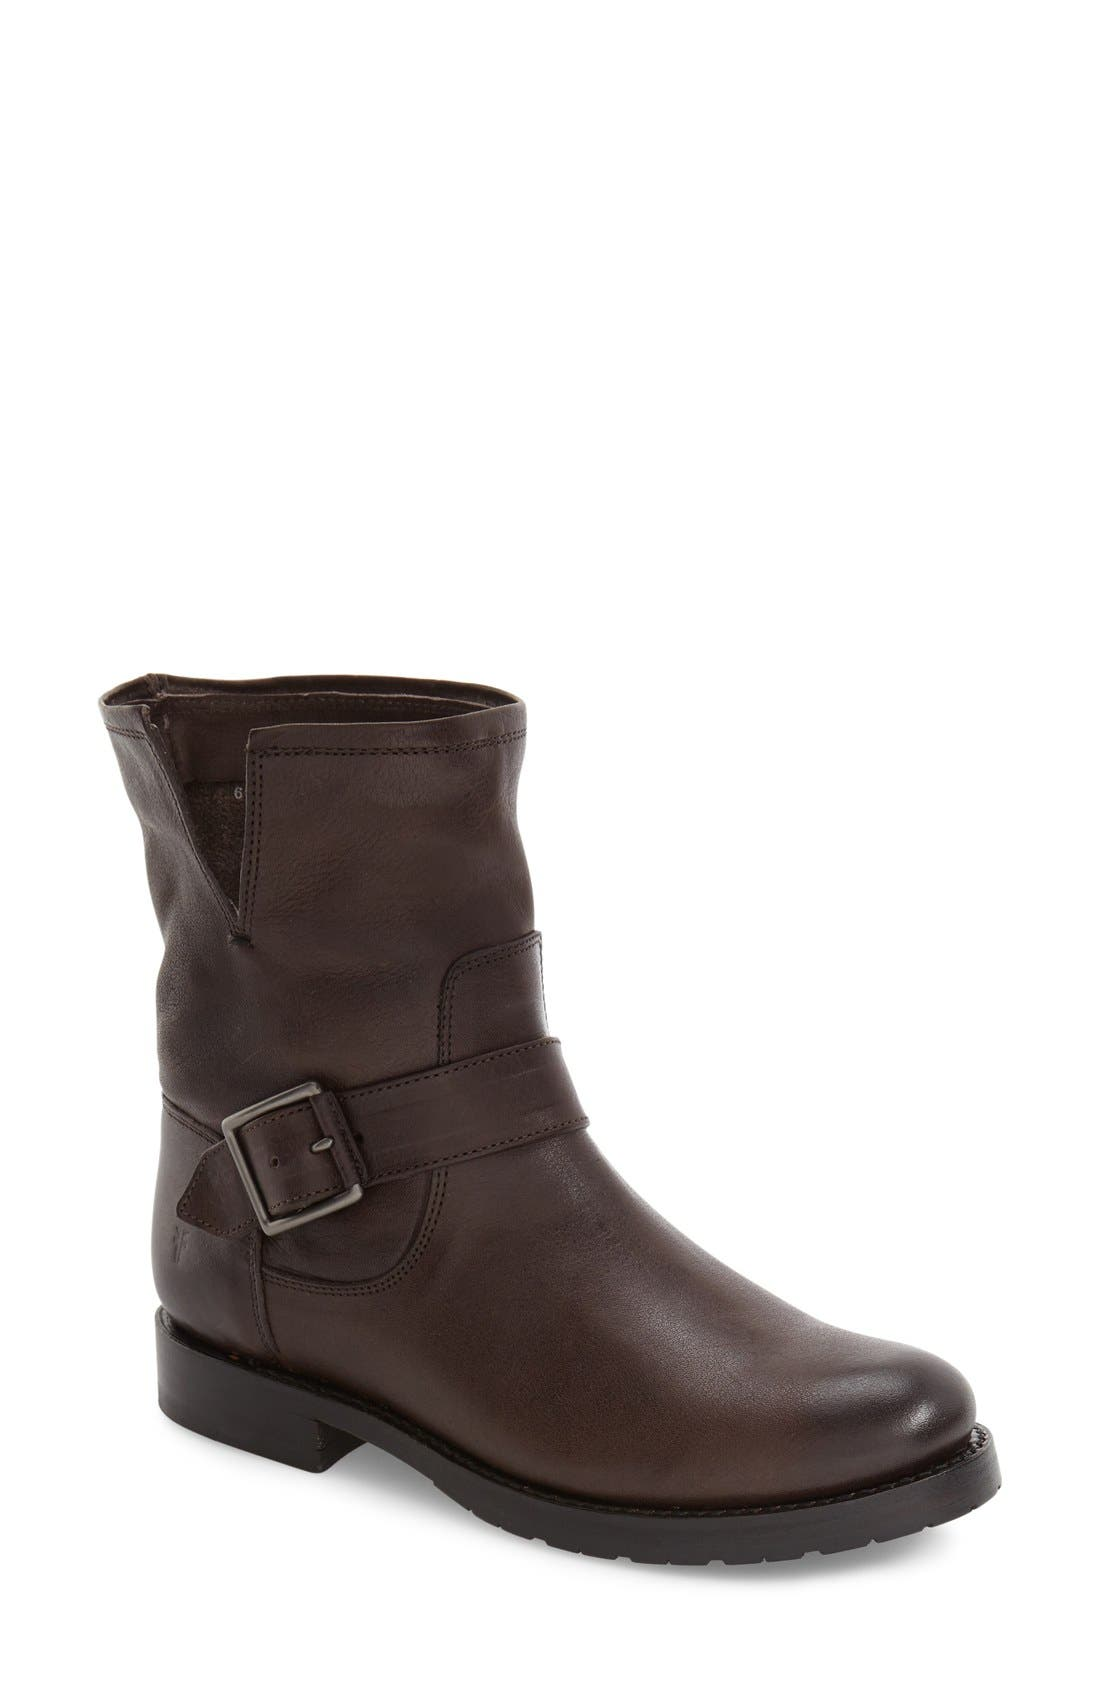 'Natalie' Engineer Boot,                         Main,                         color, Charcoal